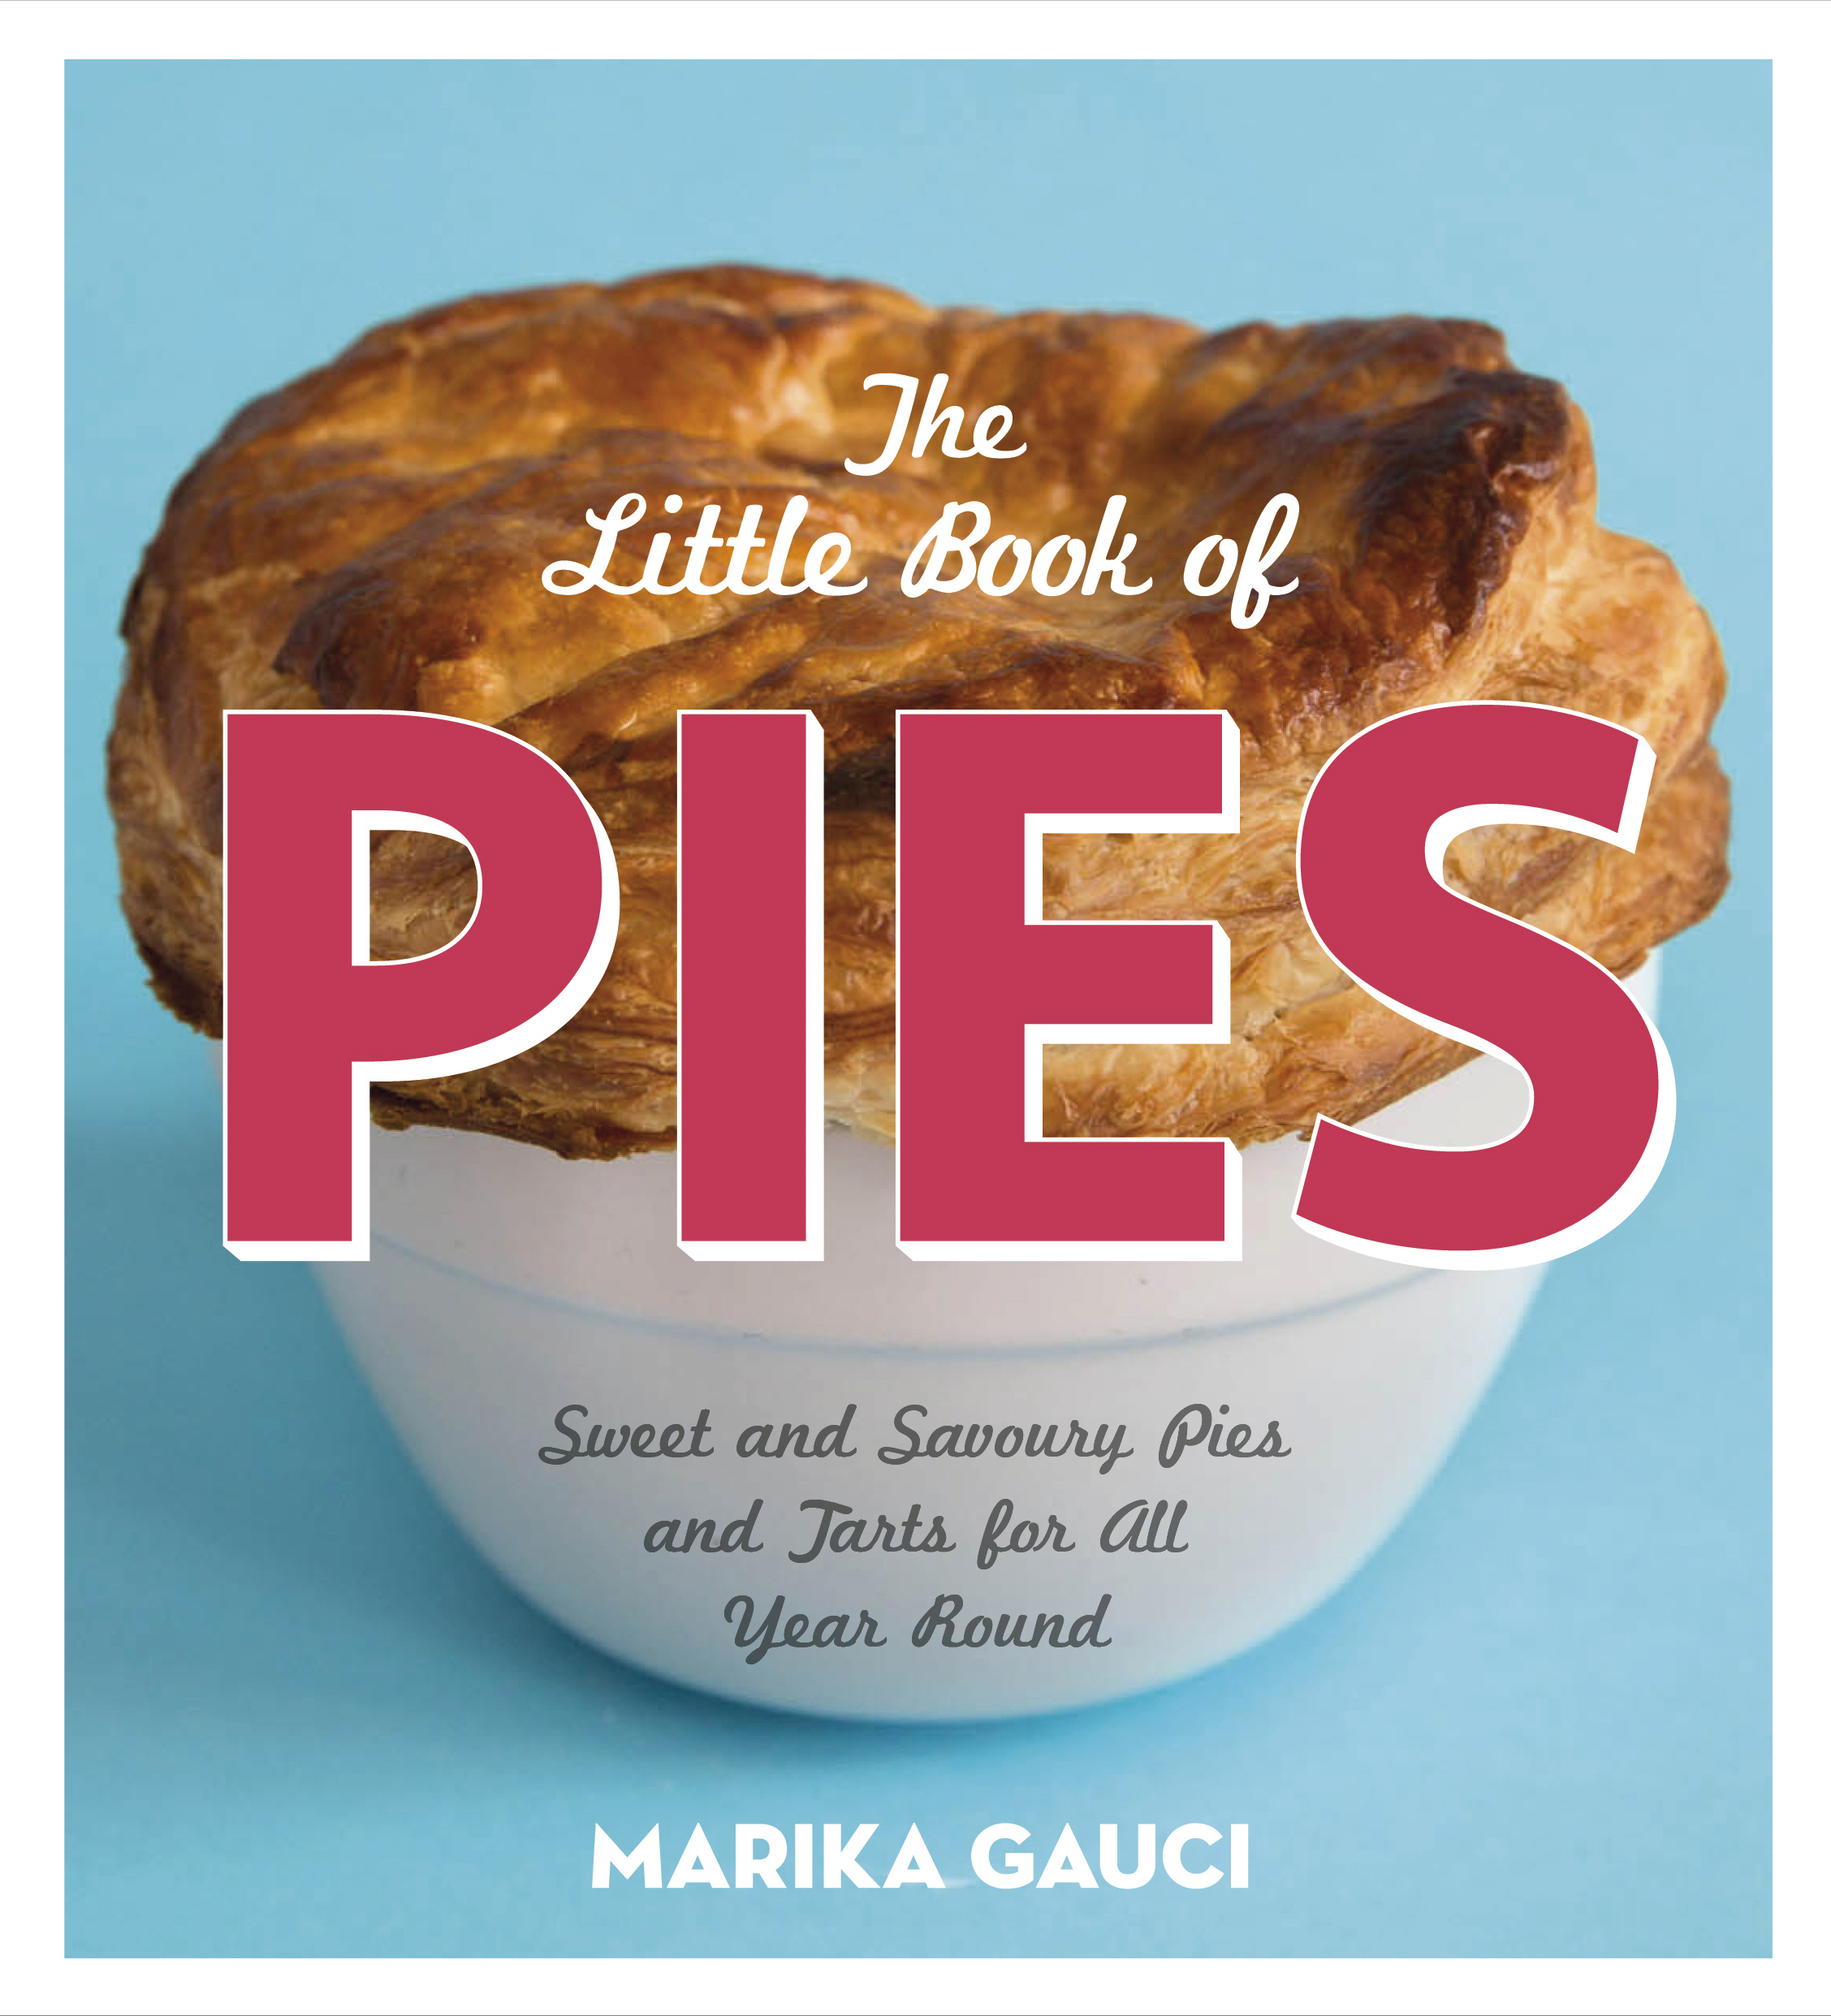 The Little Book of Pies Sweet and Savoury Pies and Tarts For All Year Round